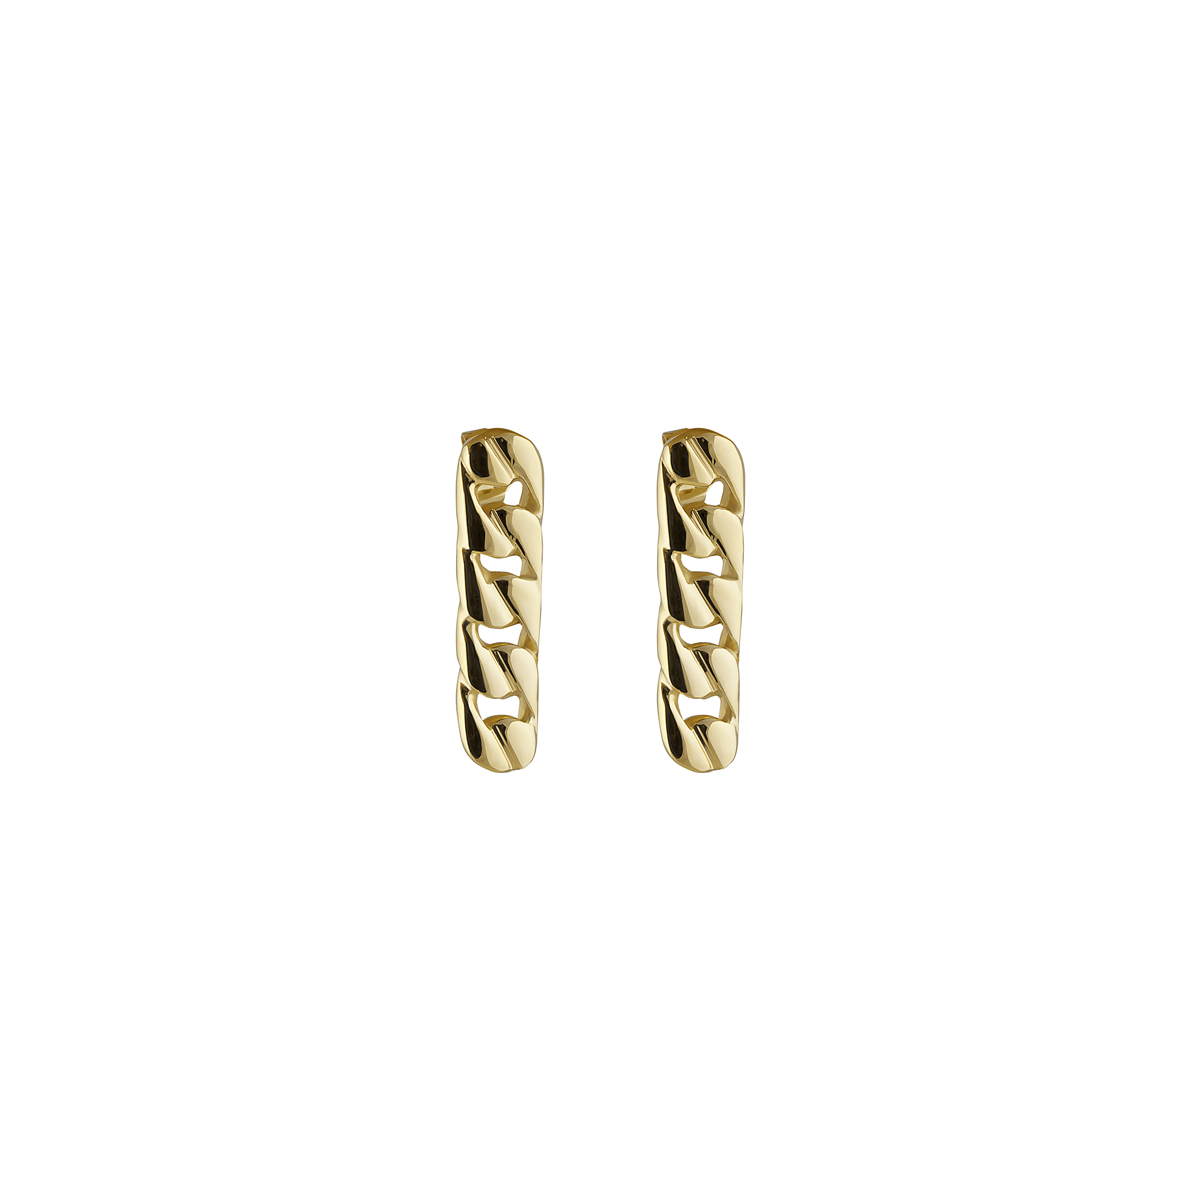 Pin Link Earrings Gold in the group EARRINGS at EMMA ISRAELSSON (ear091)